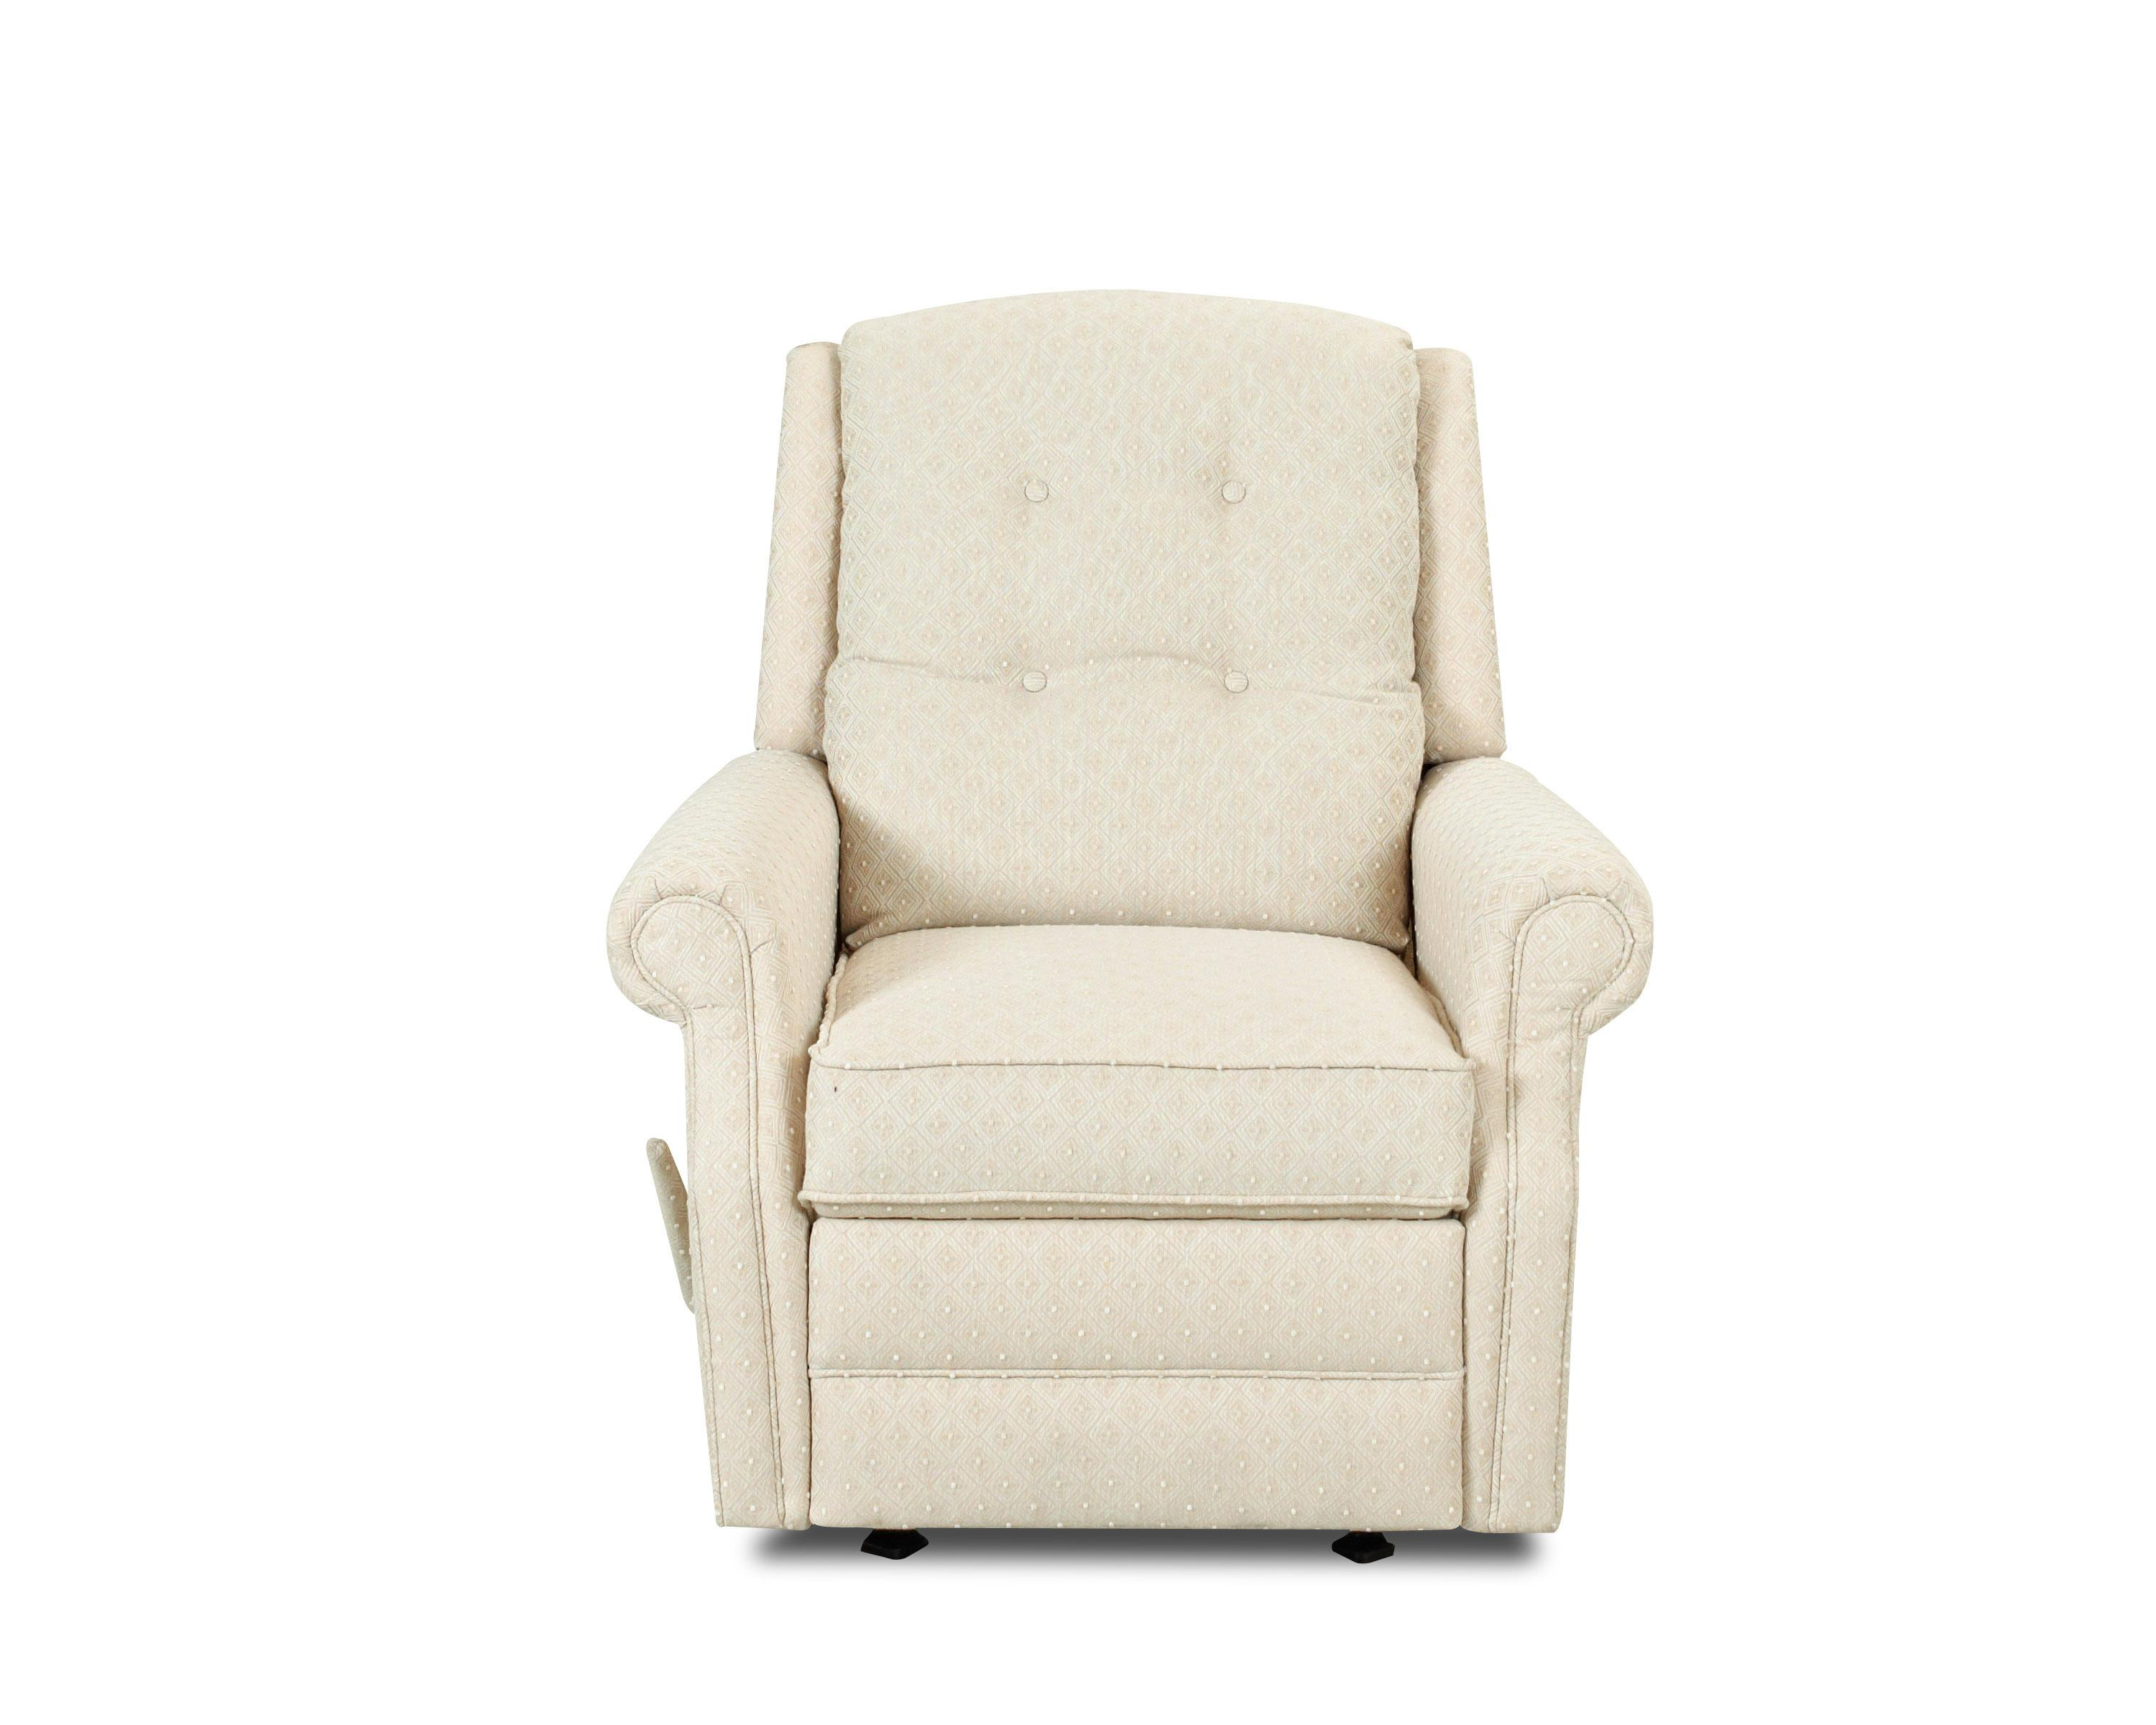 glider recliner chair cream upholstered dining chairs uk transitional swivel gliding reclining with button tufting by